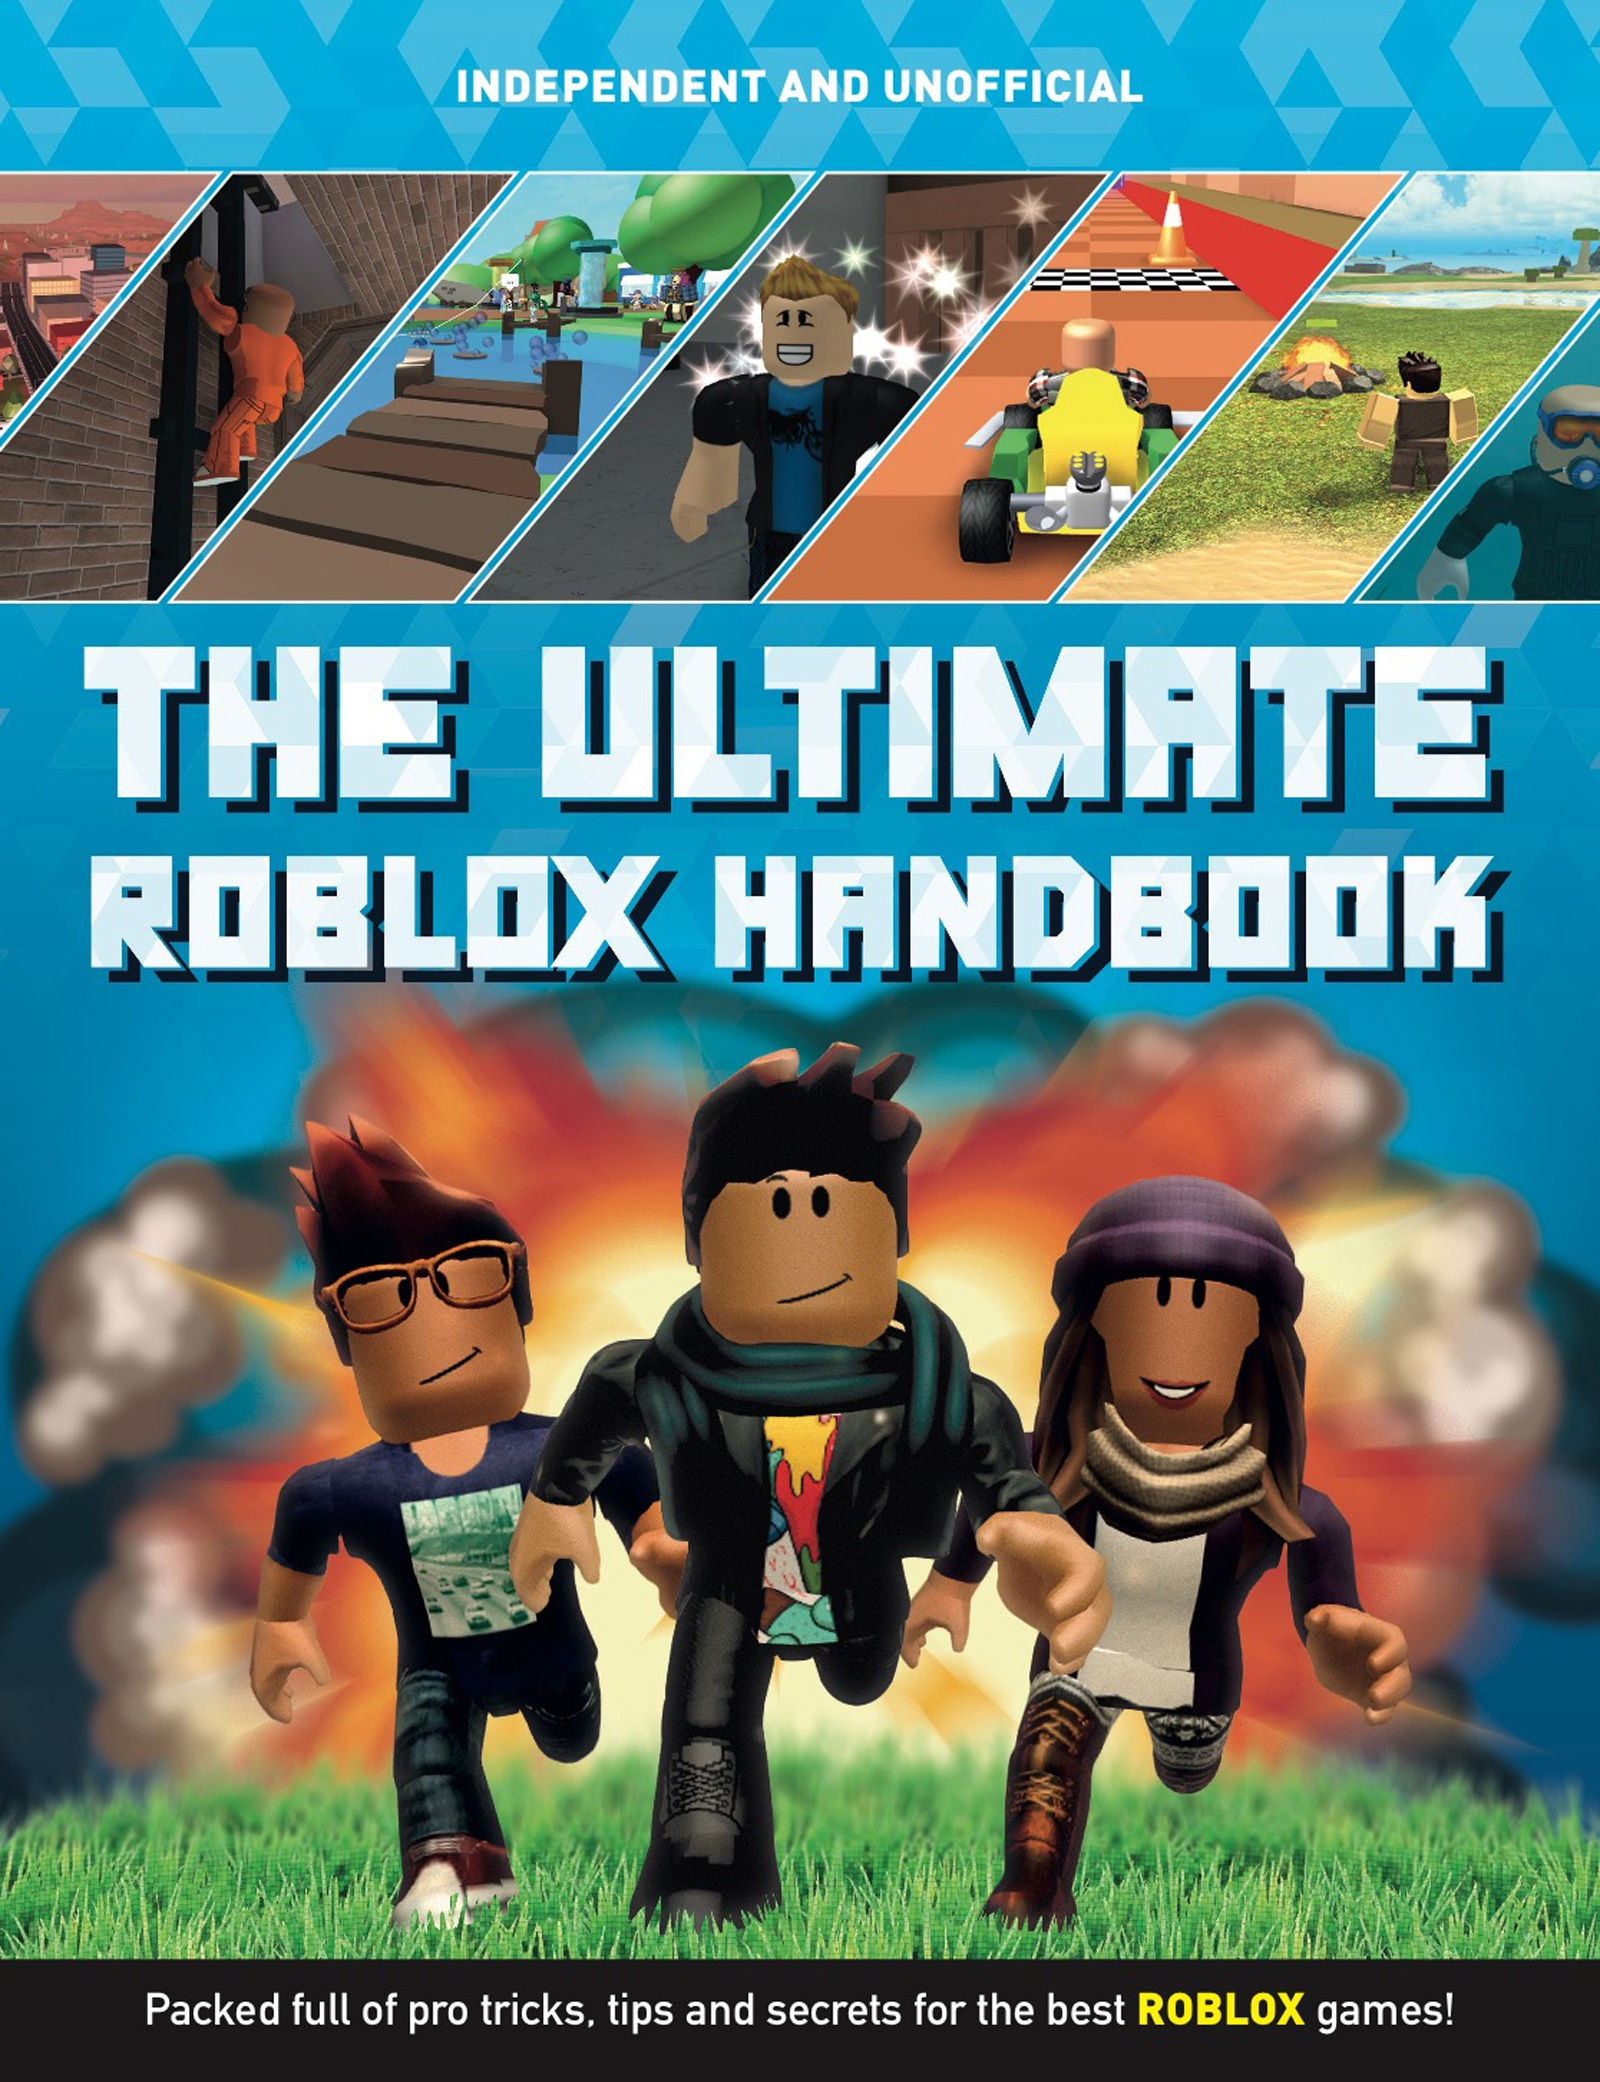 Run Bomb Roblox - The Ultimate Roblox Handbook Kevin Pettman 9781787393684